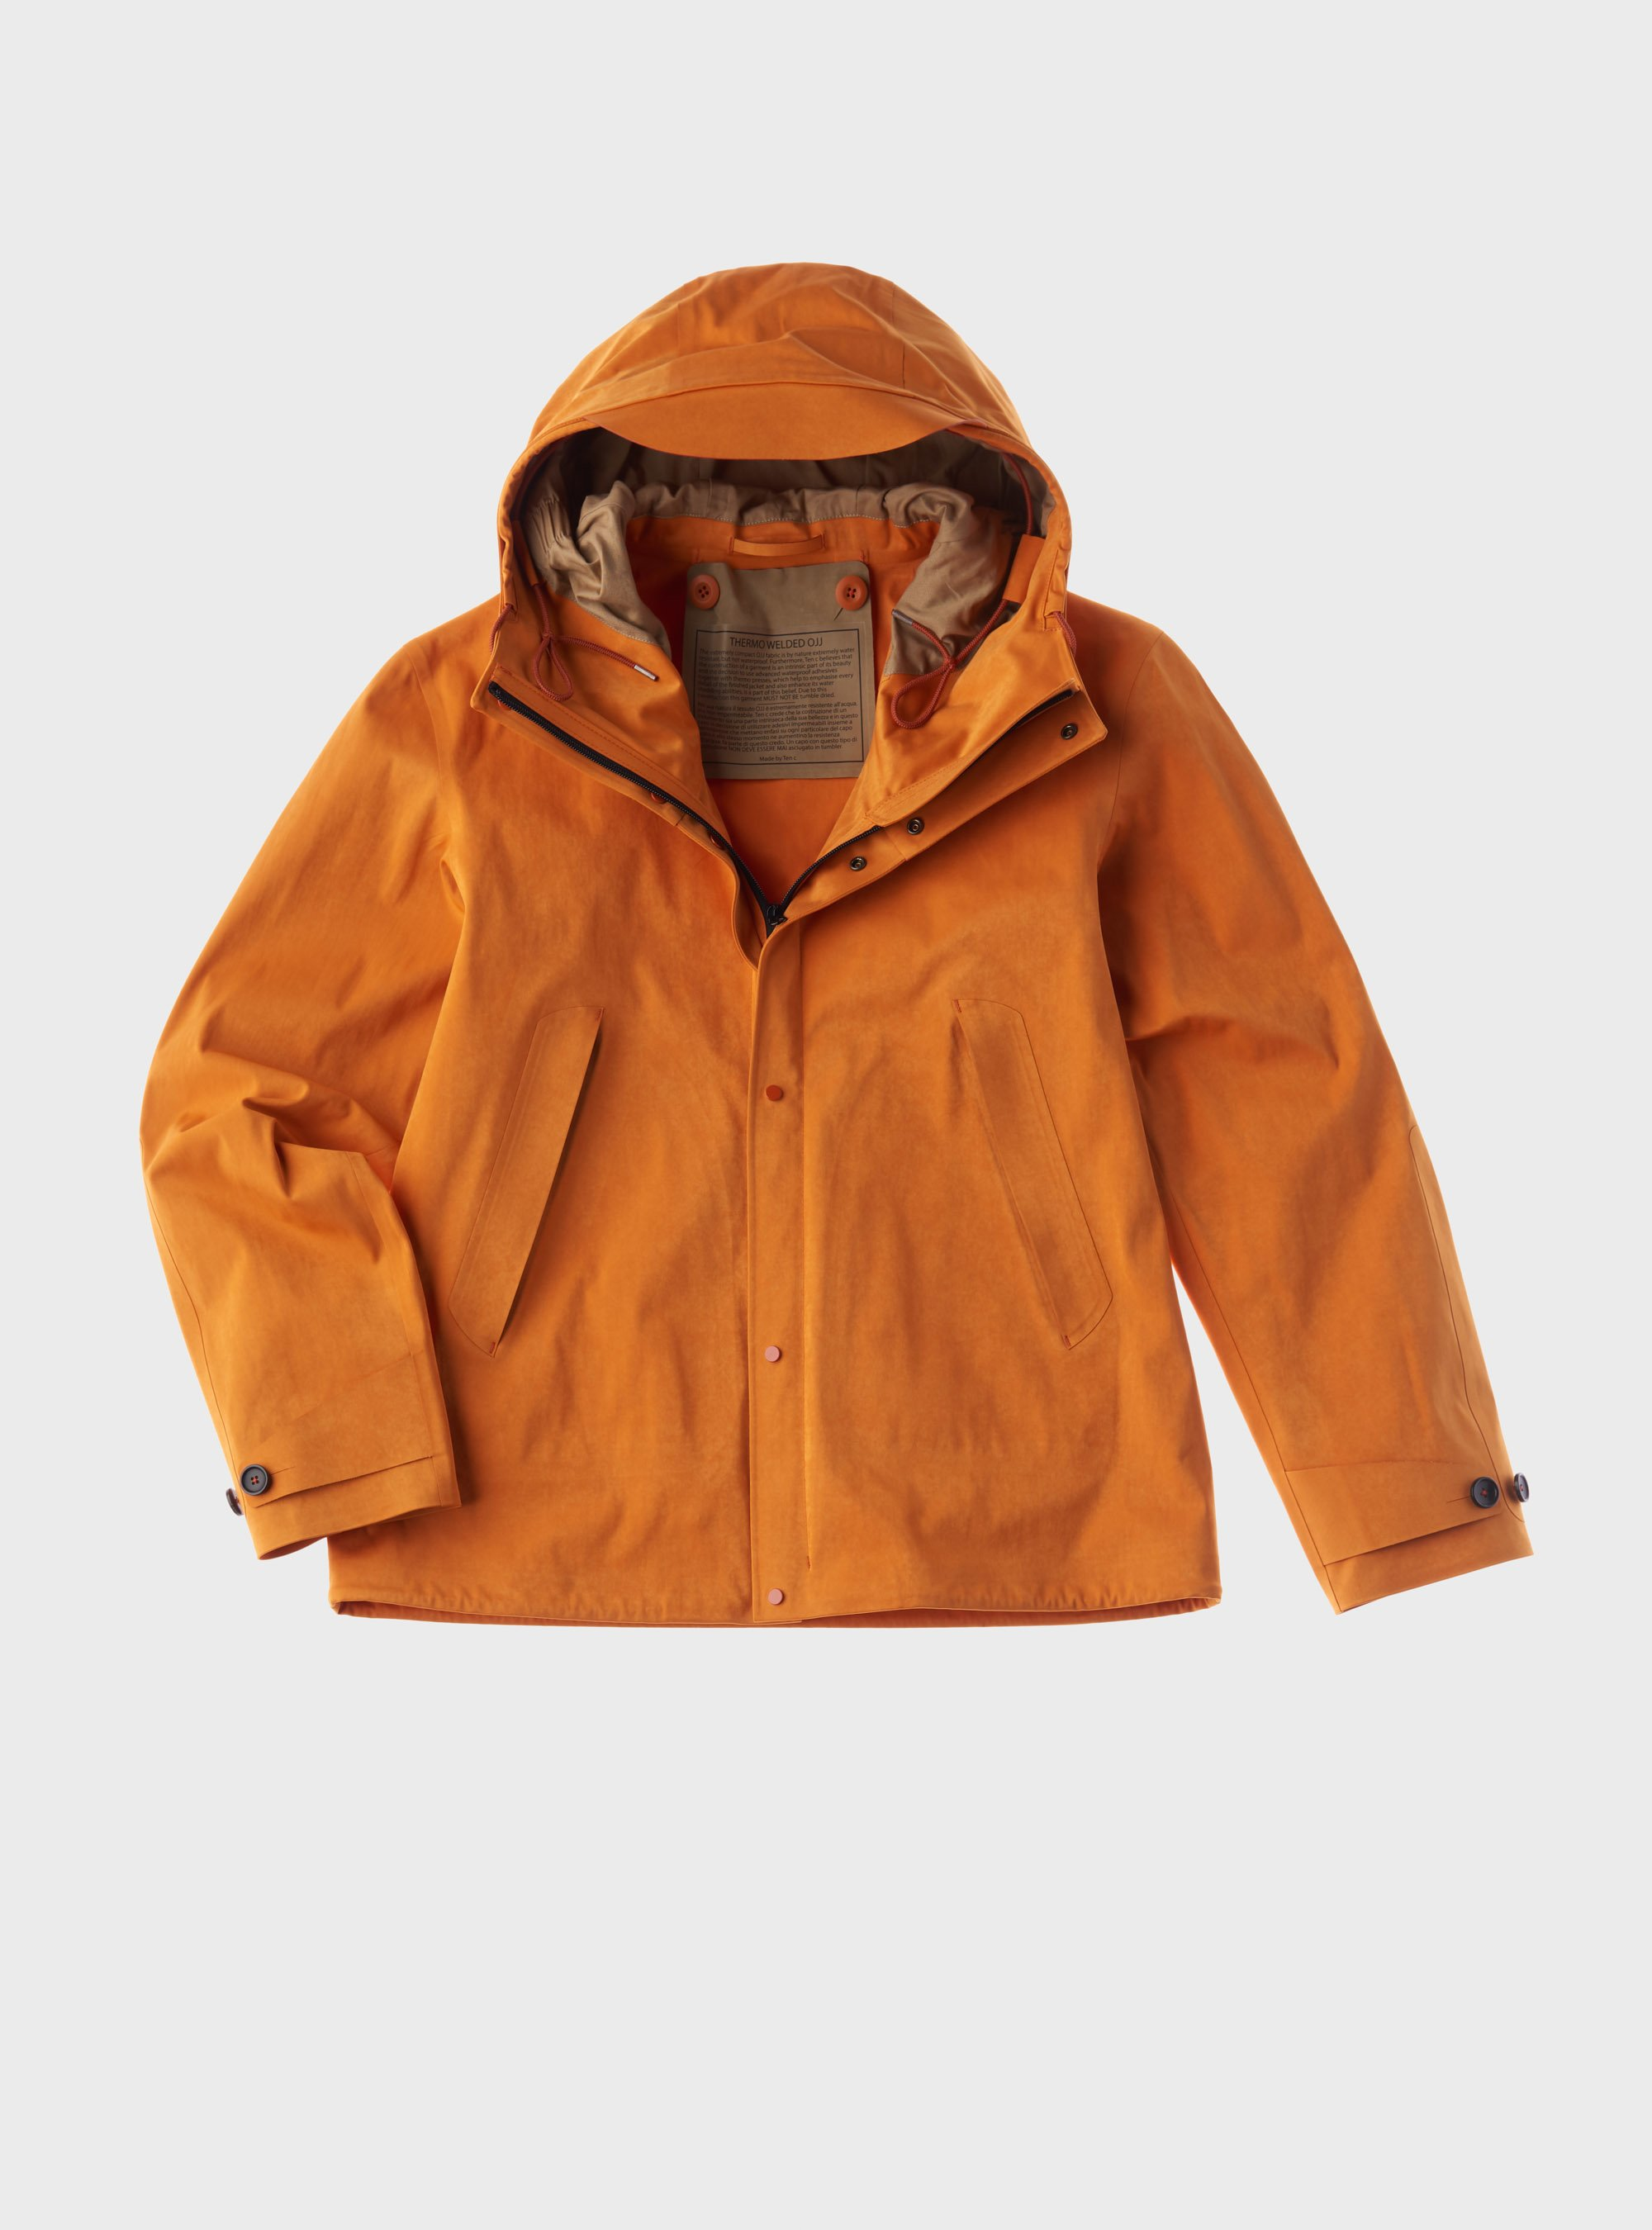 TEN C - ANORAK THERMO ADHESIVE - Clementine - TEN C